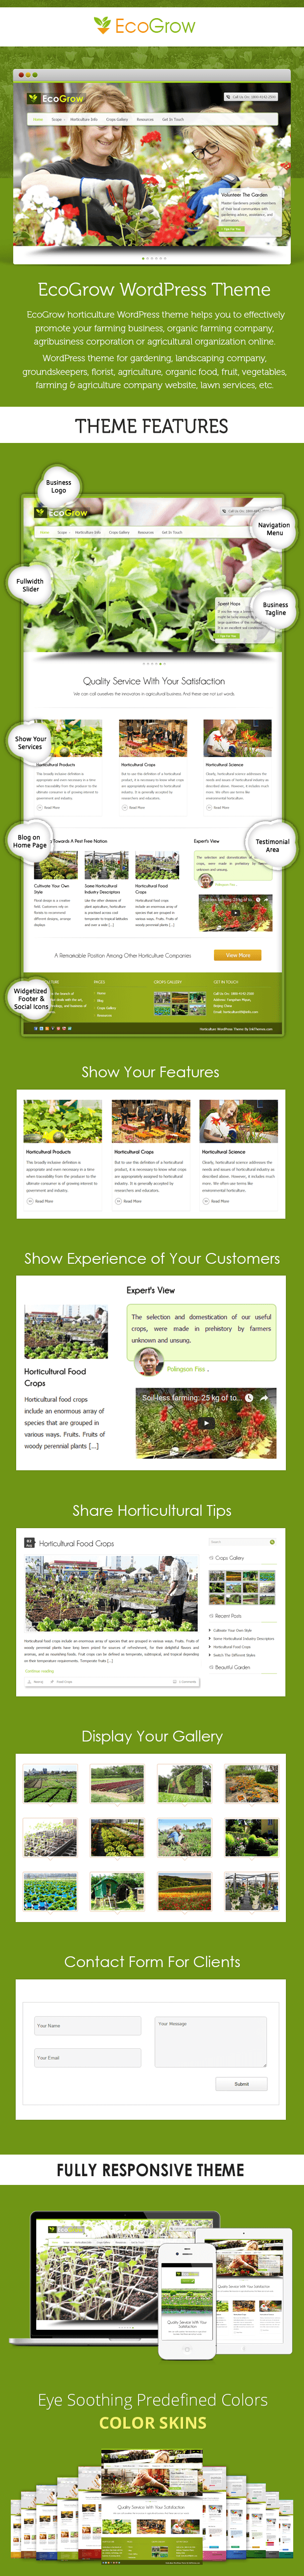 horticulture-wordpress-theme-Sale-page-preview